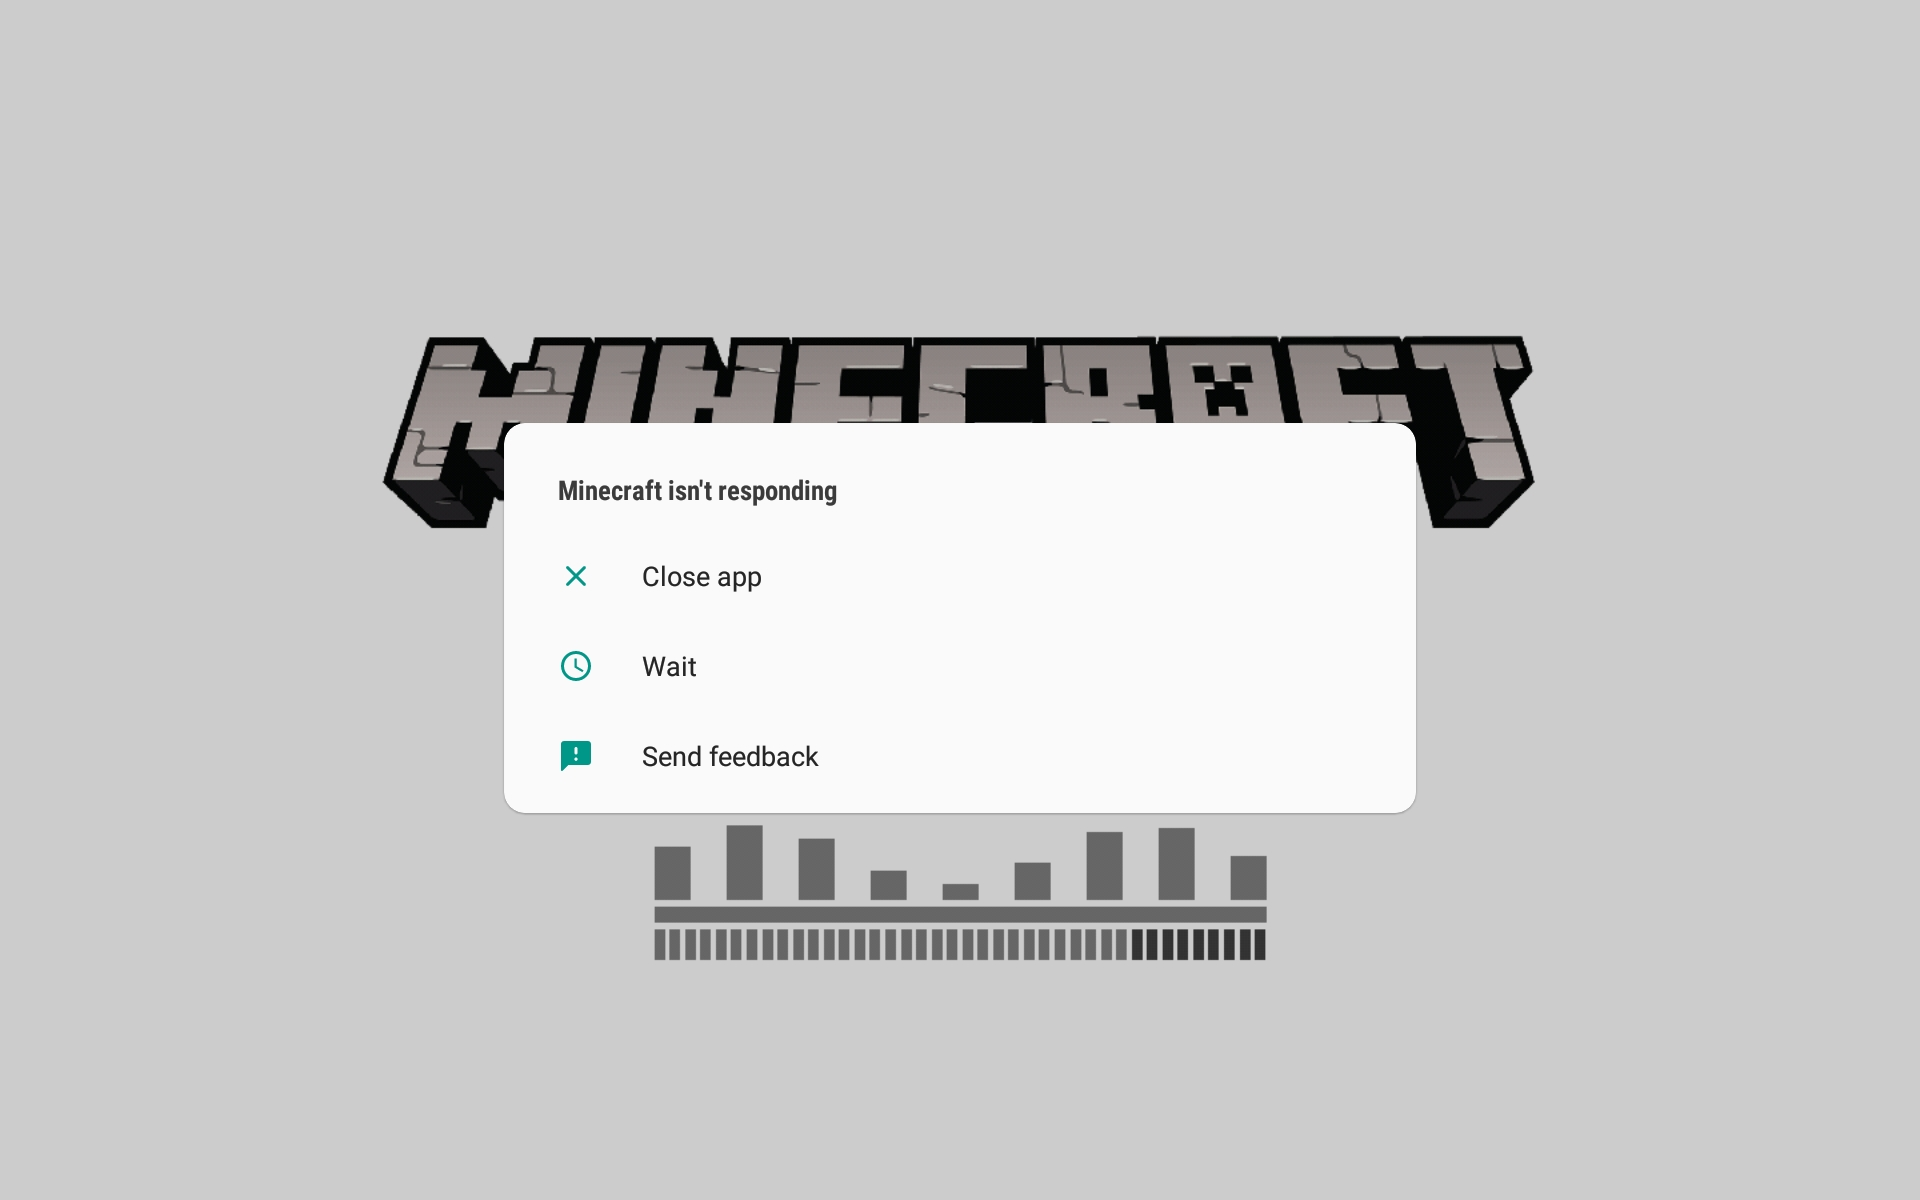 MCPE-35078] Wont go past Initial white Minecraft page - Jira